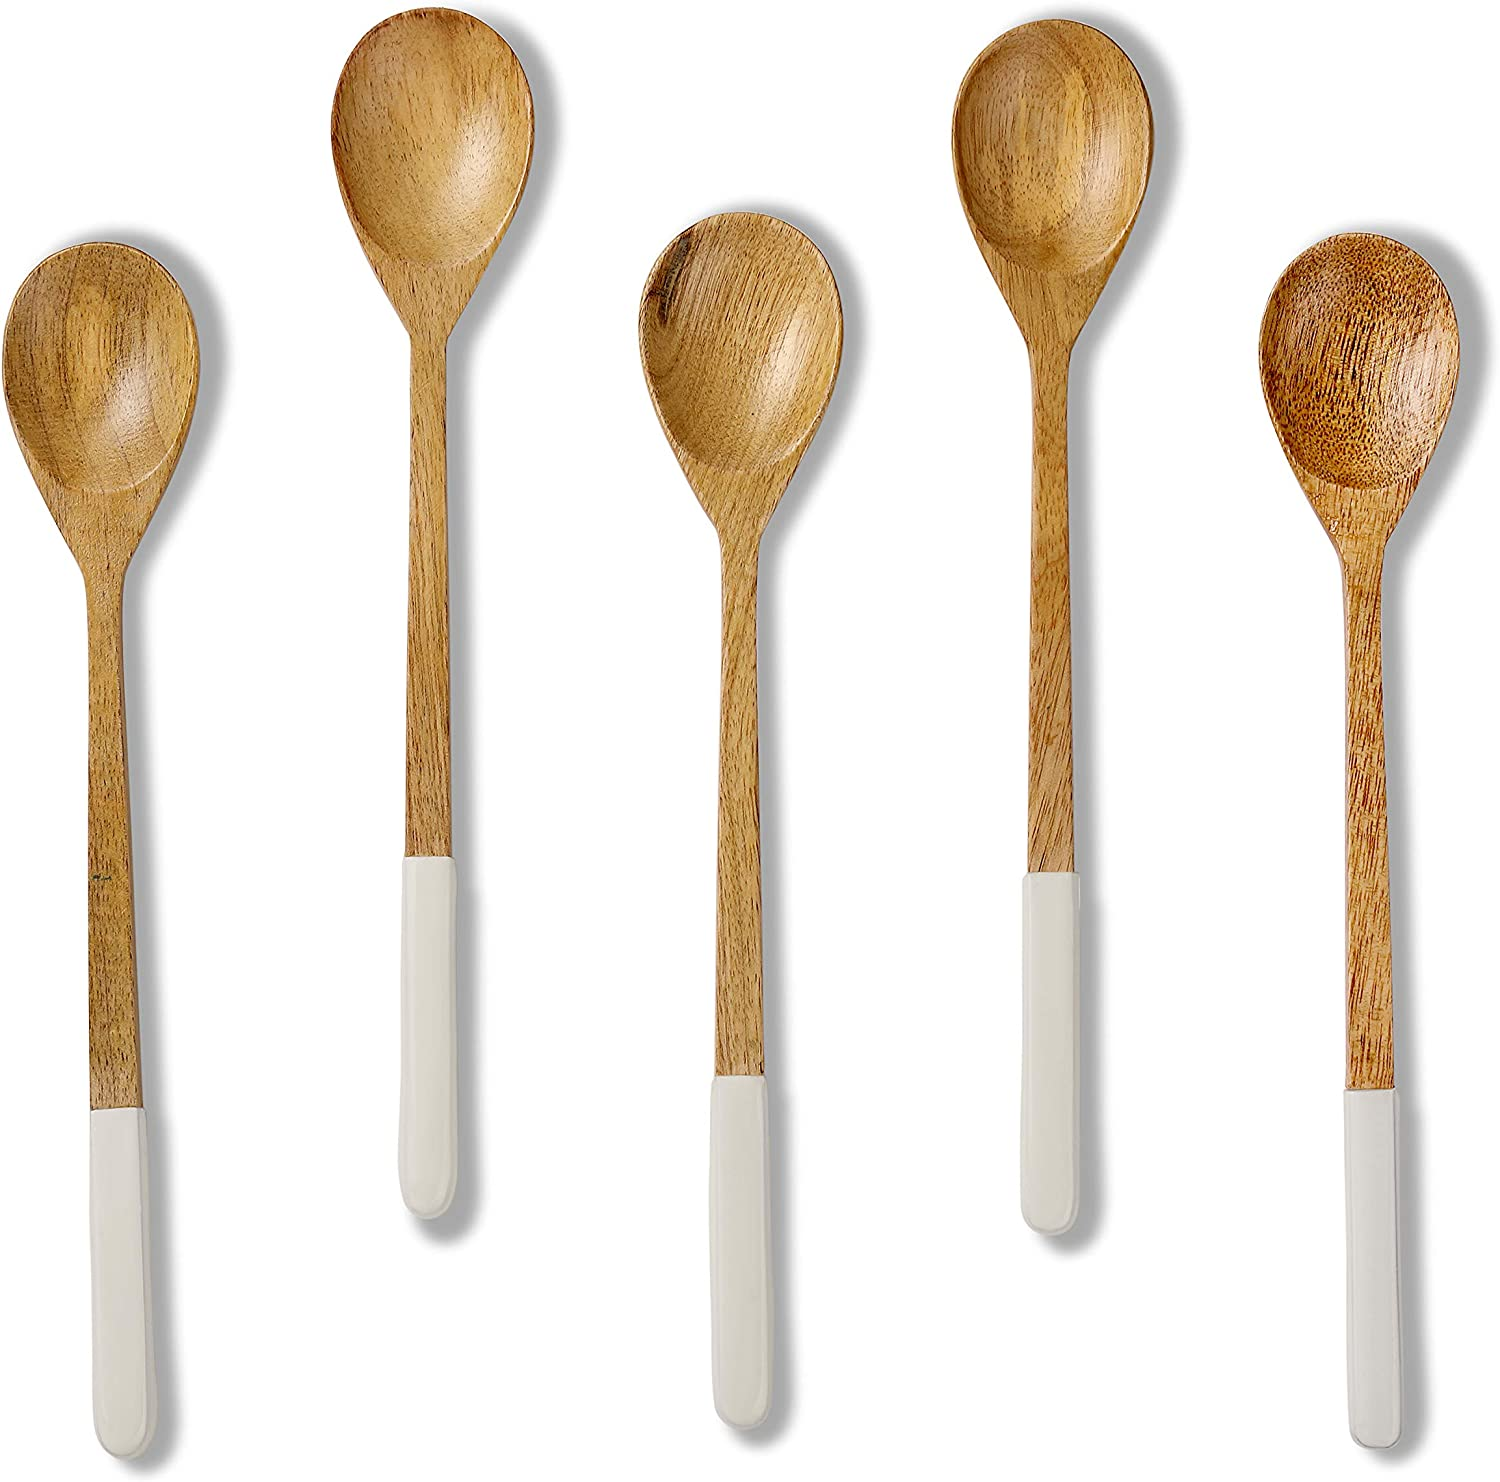 Folkulture Wooden Spoons for Cooking or Eating Soup or Rice, Mango Wood Mini Spoons for Korean or Japanese Meals, Small Wooden Spoons or Utensils for Mixing or Stirring, Set of 5, 9 inch, White